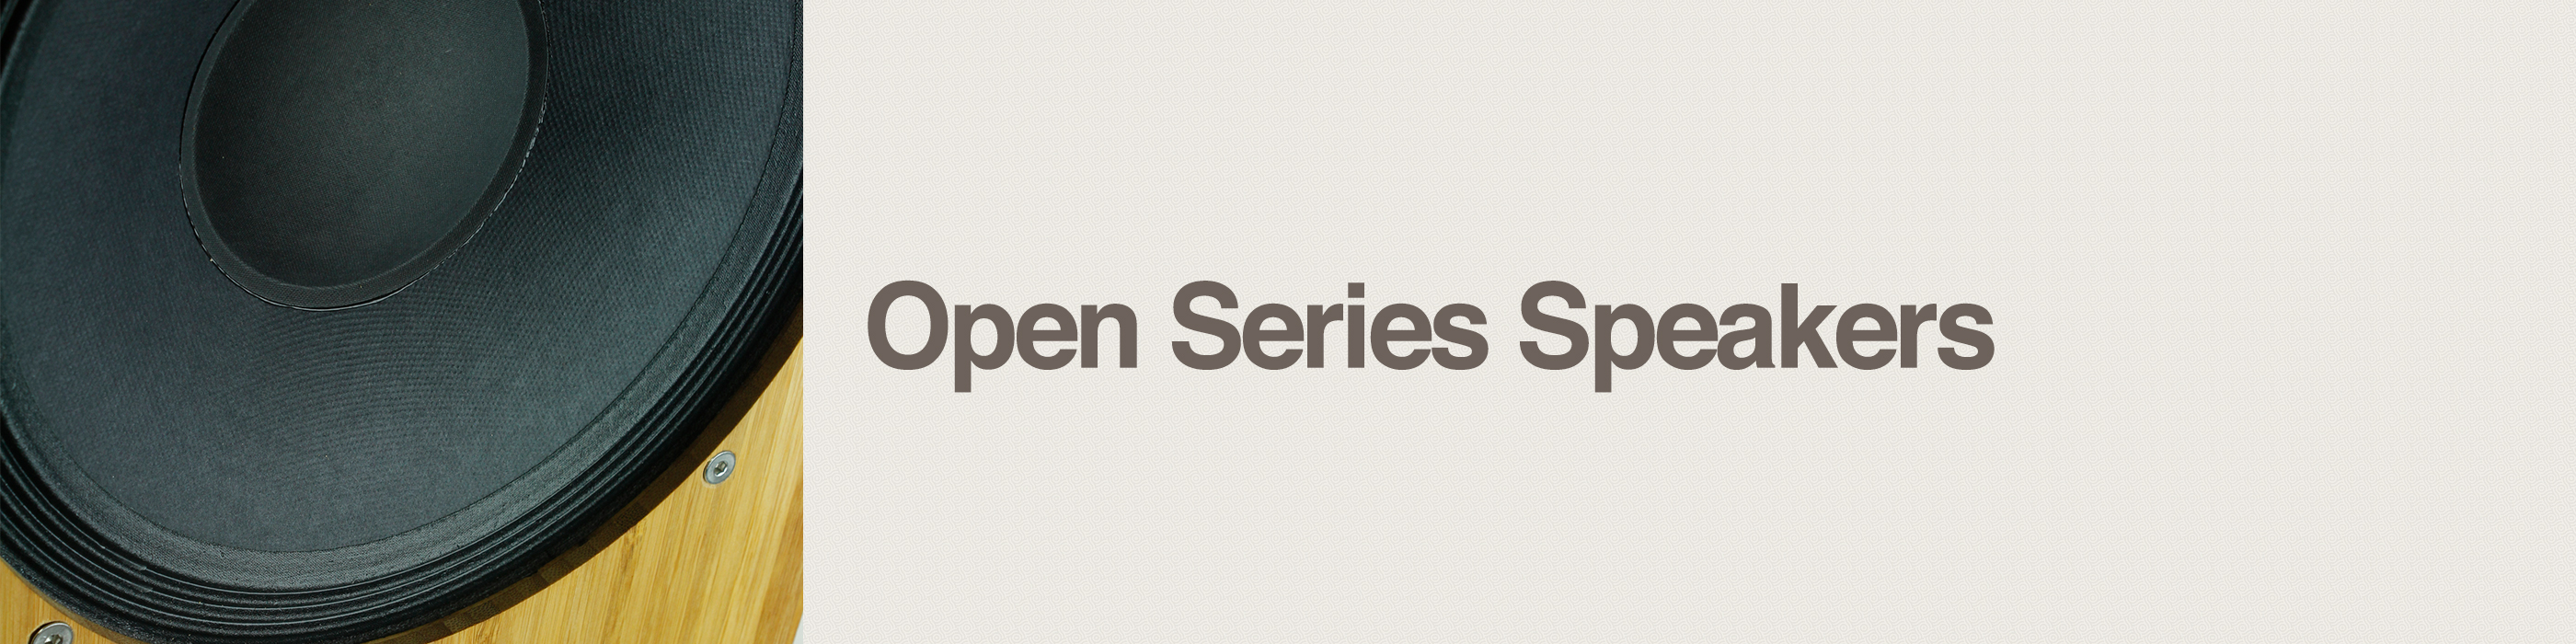 open series speakers header